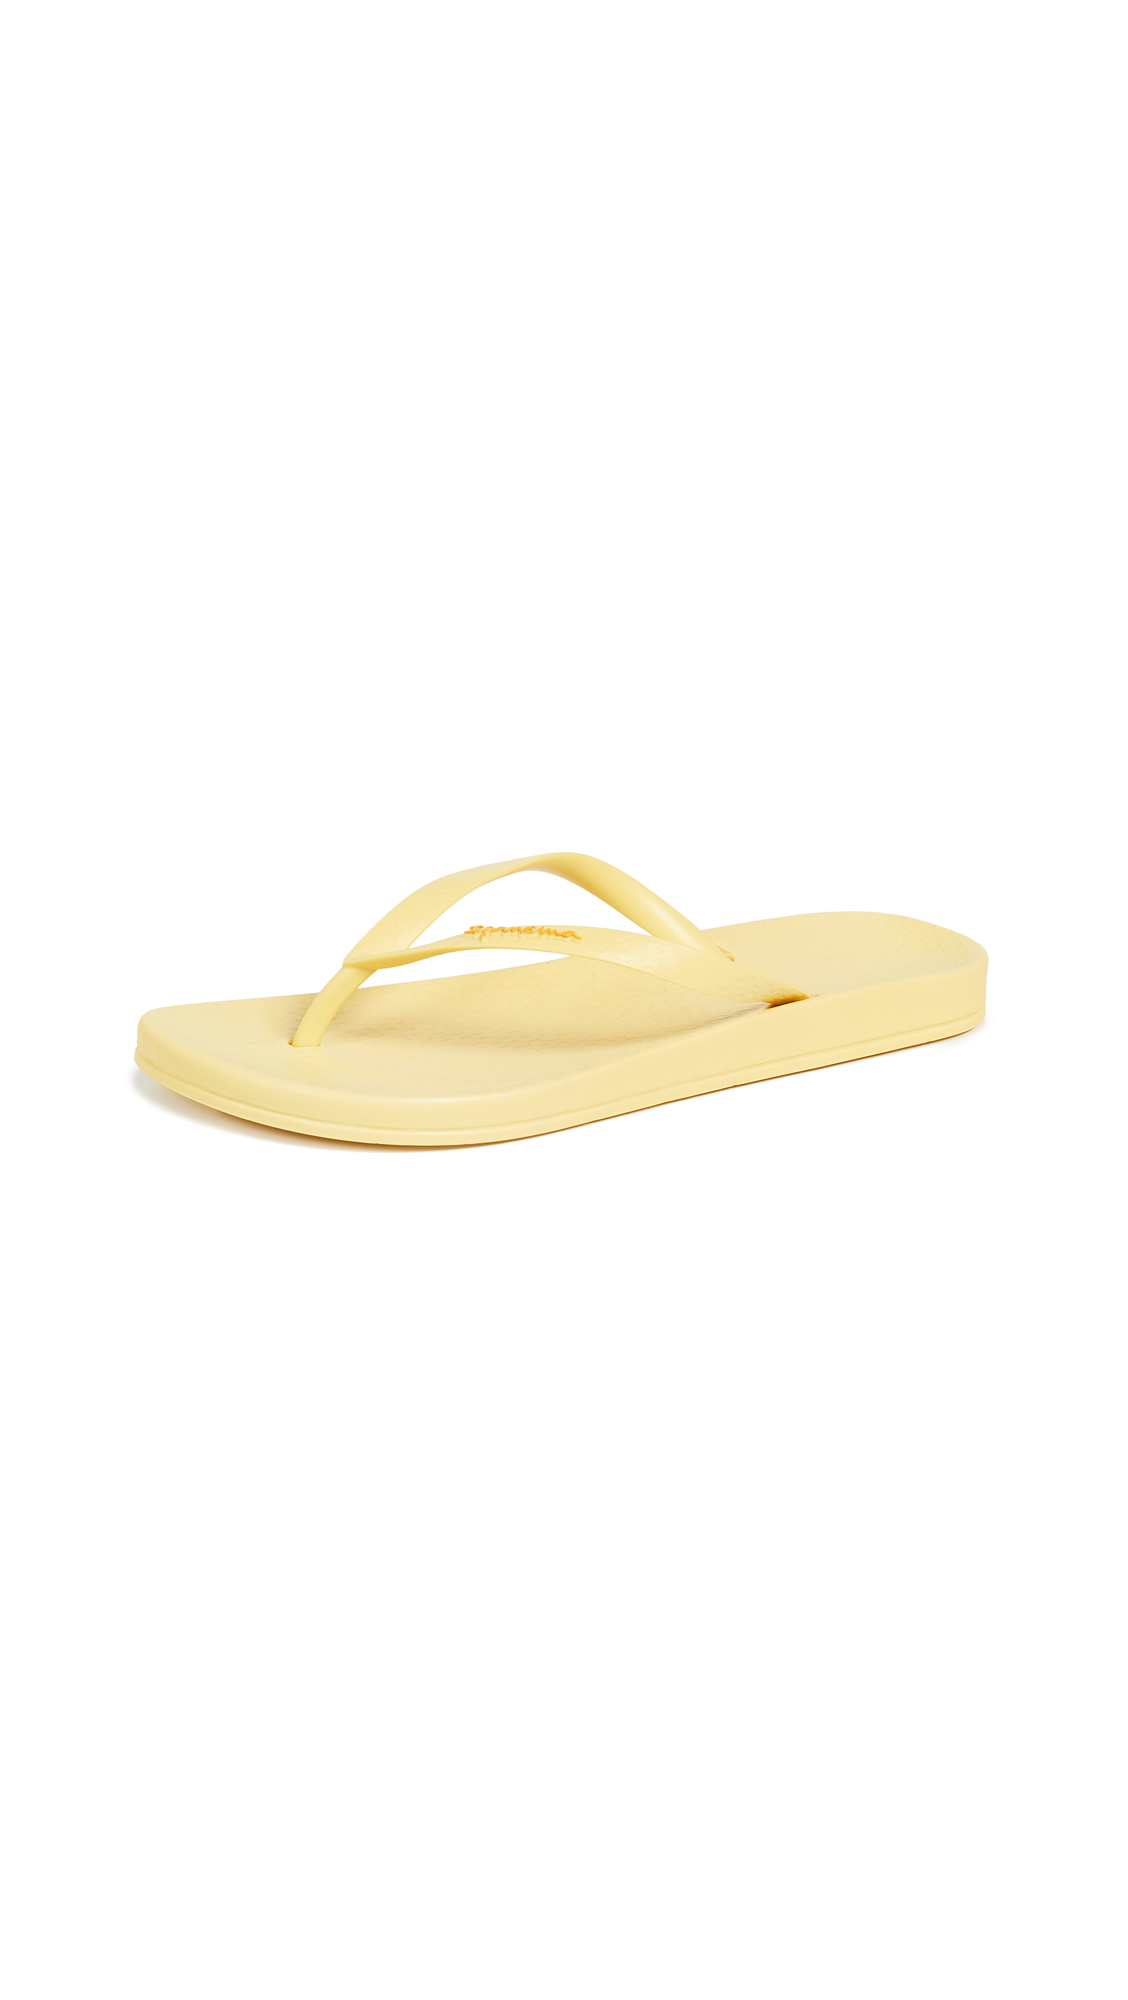 Ipanema Ana Colors Flip Flops - Light Yellow